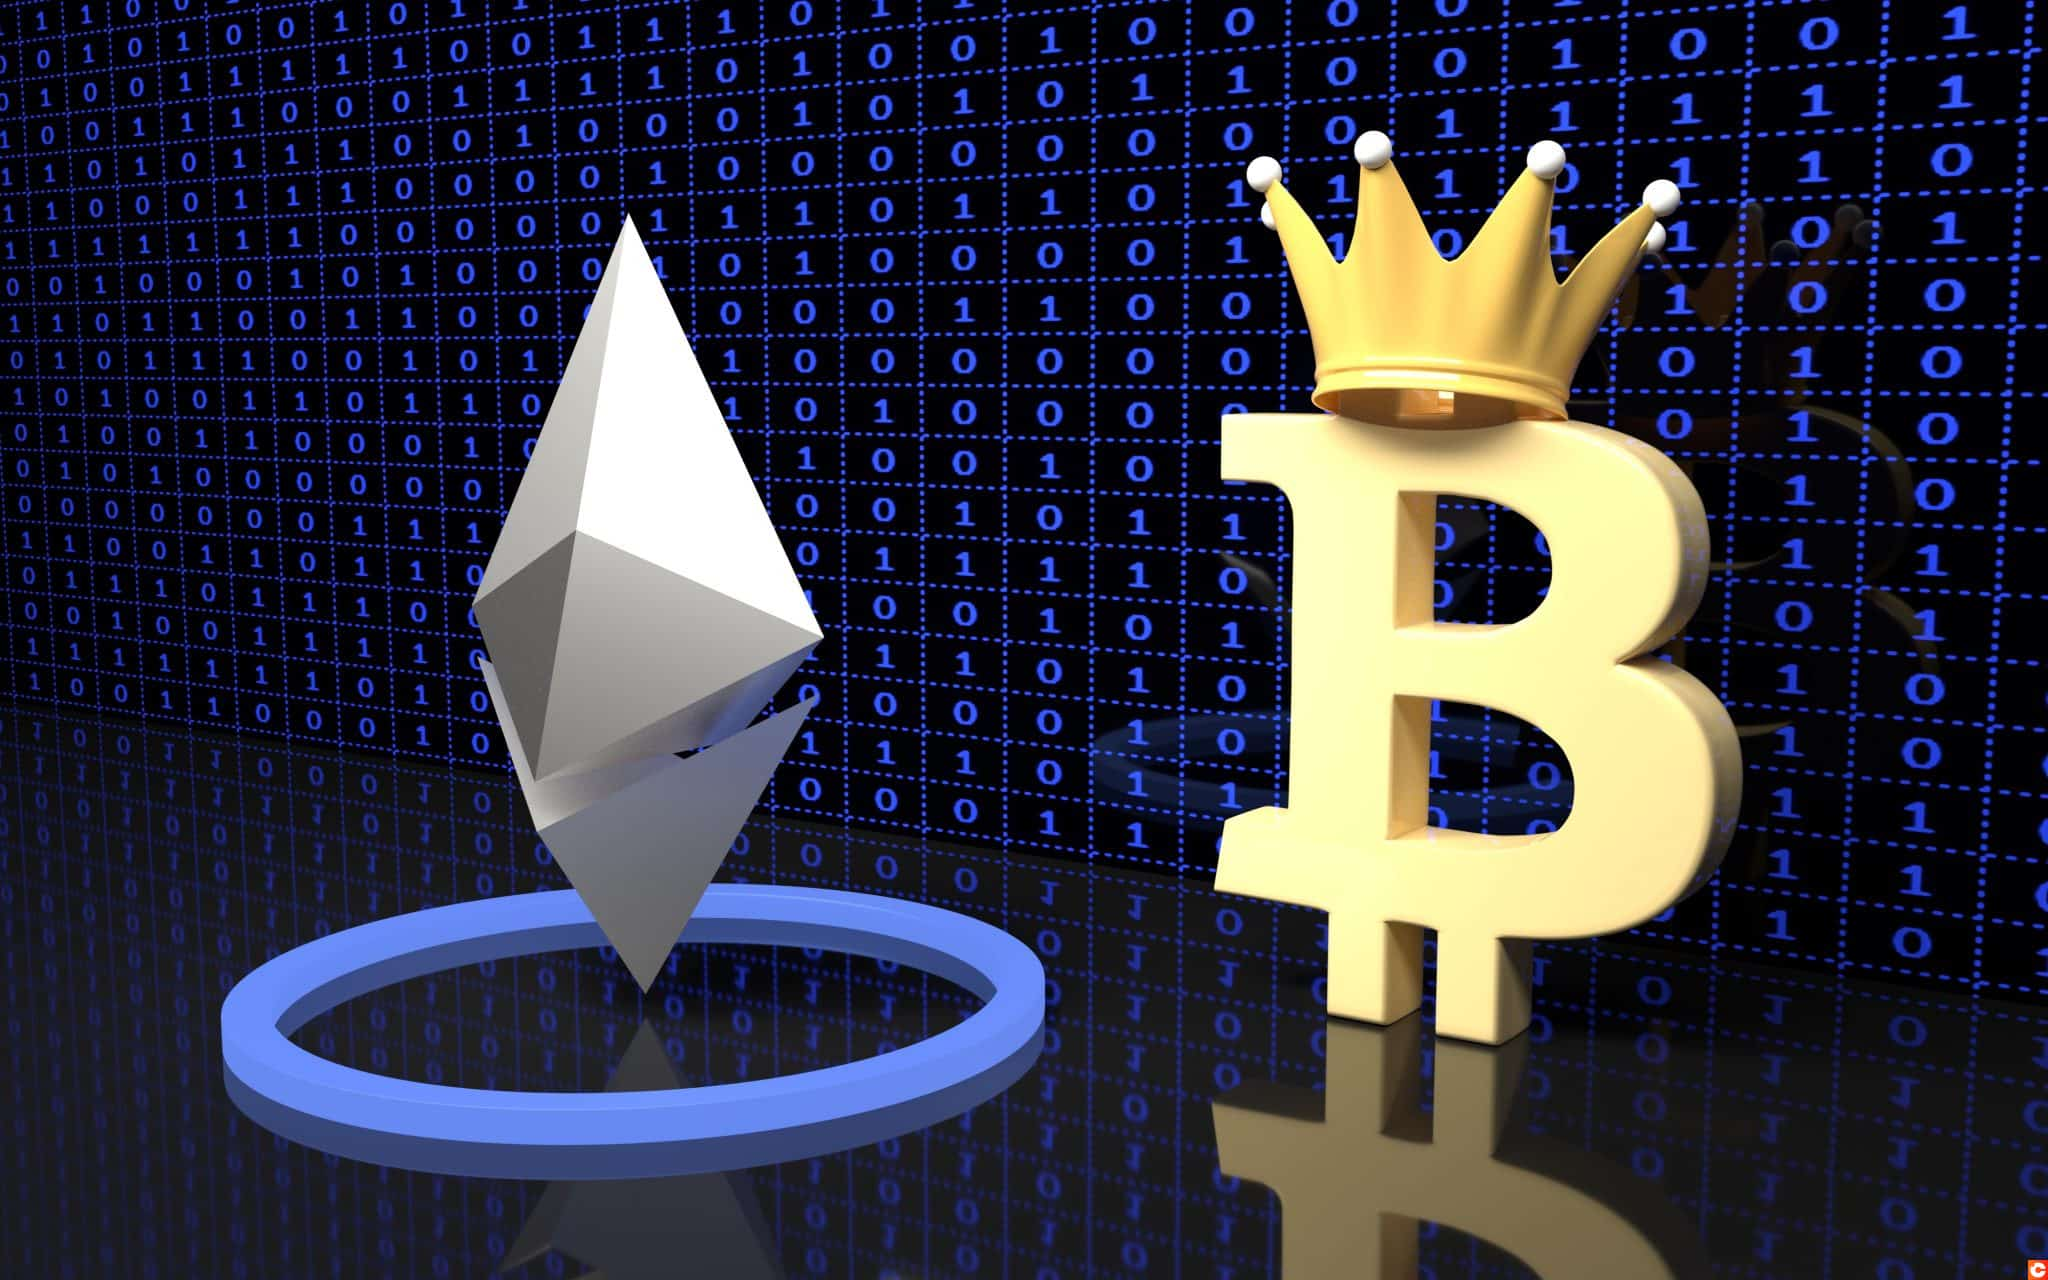 Bitcoin and Ethereum currency signs.